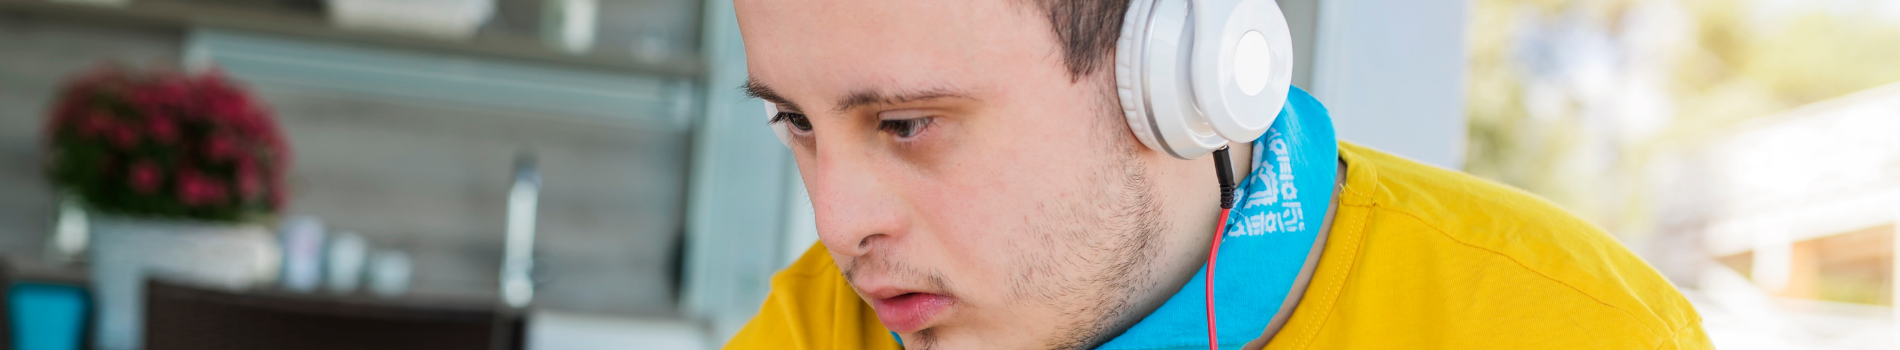 A man wearing headphones looks at something